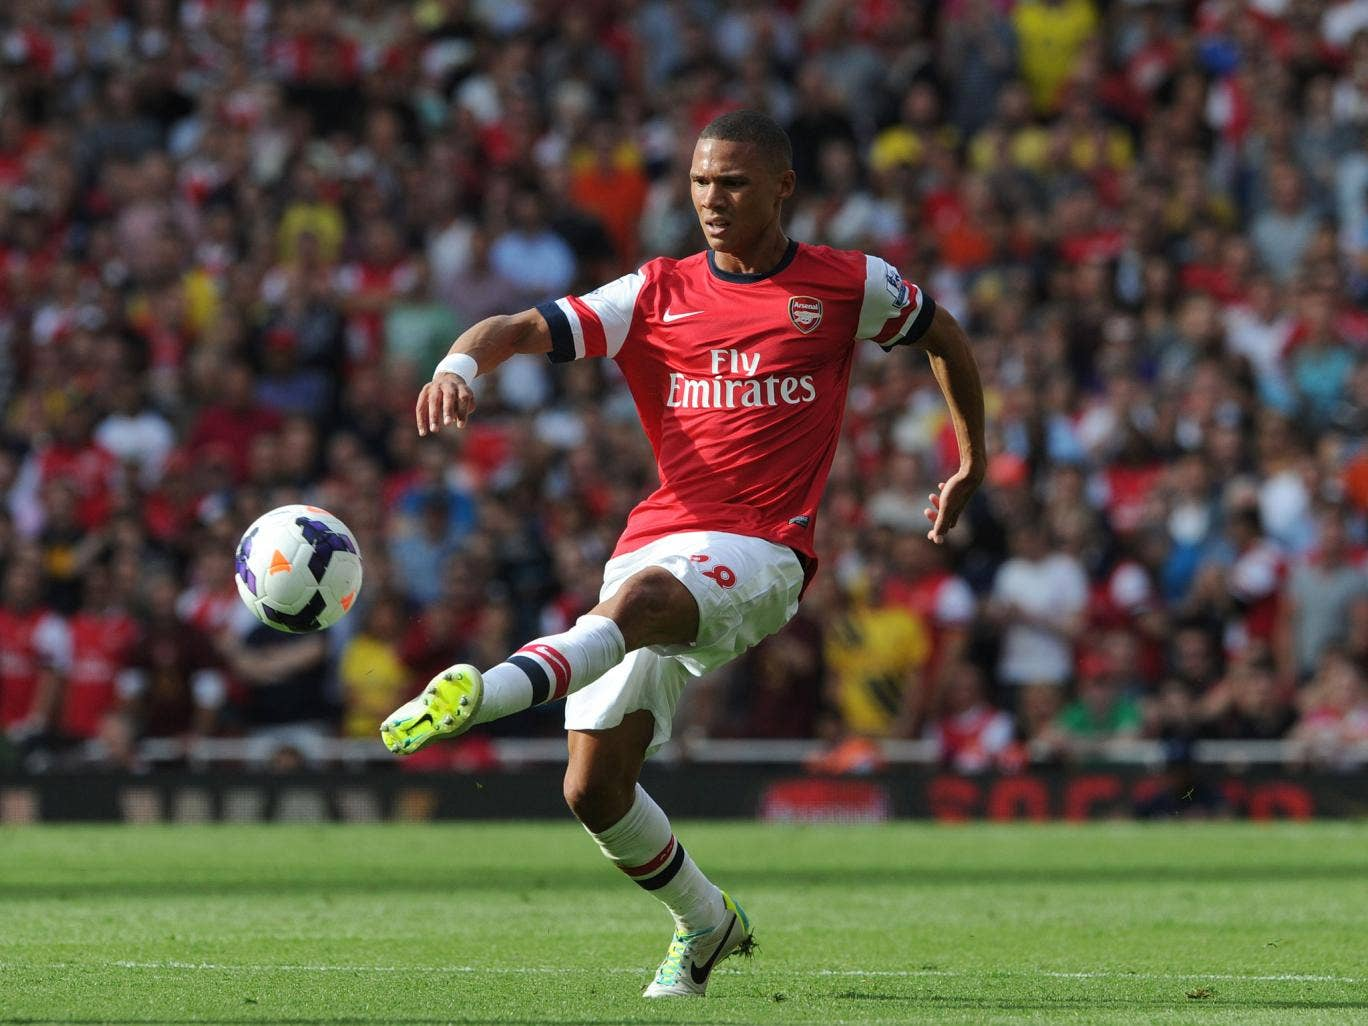 Gibbs has had a good start to the new season, scoring against Fenerbahce in the Champions League play-off